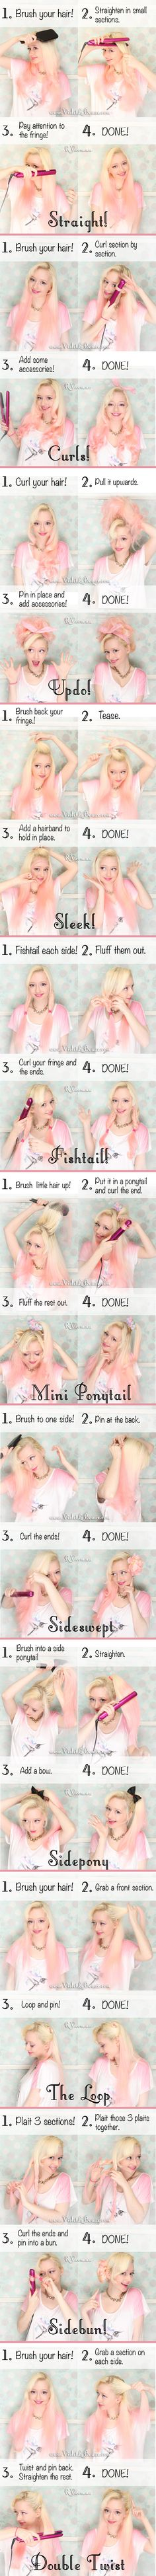 Simple tutorial for a very simple lazy day cute hair style full